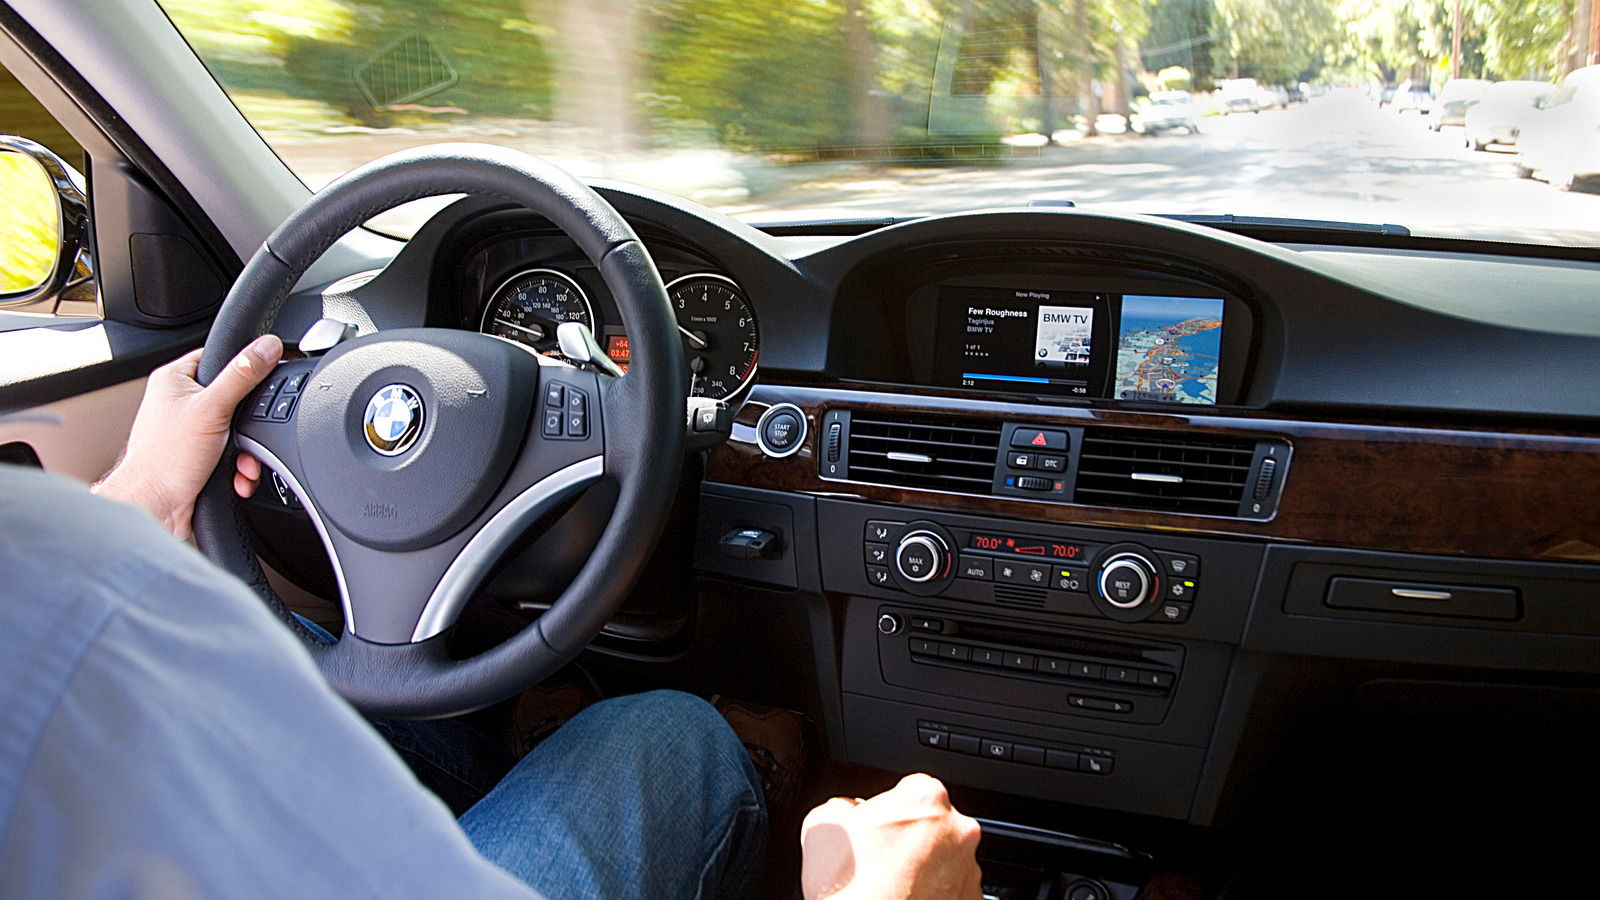 BMW Group vehicles to get iPod Out functionality.